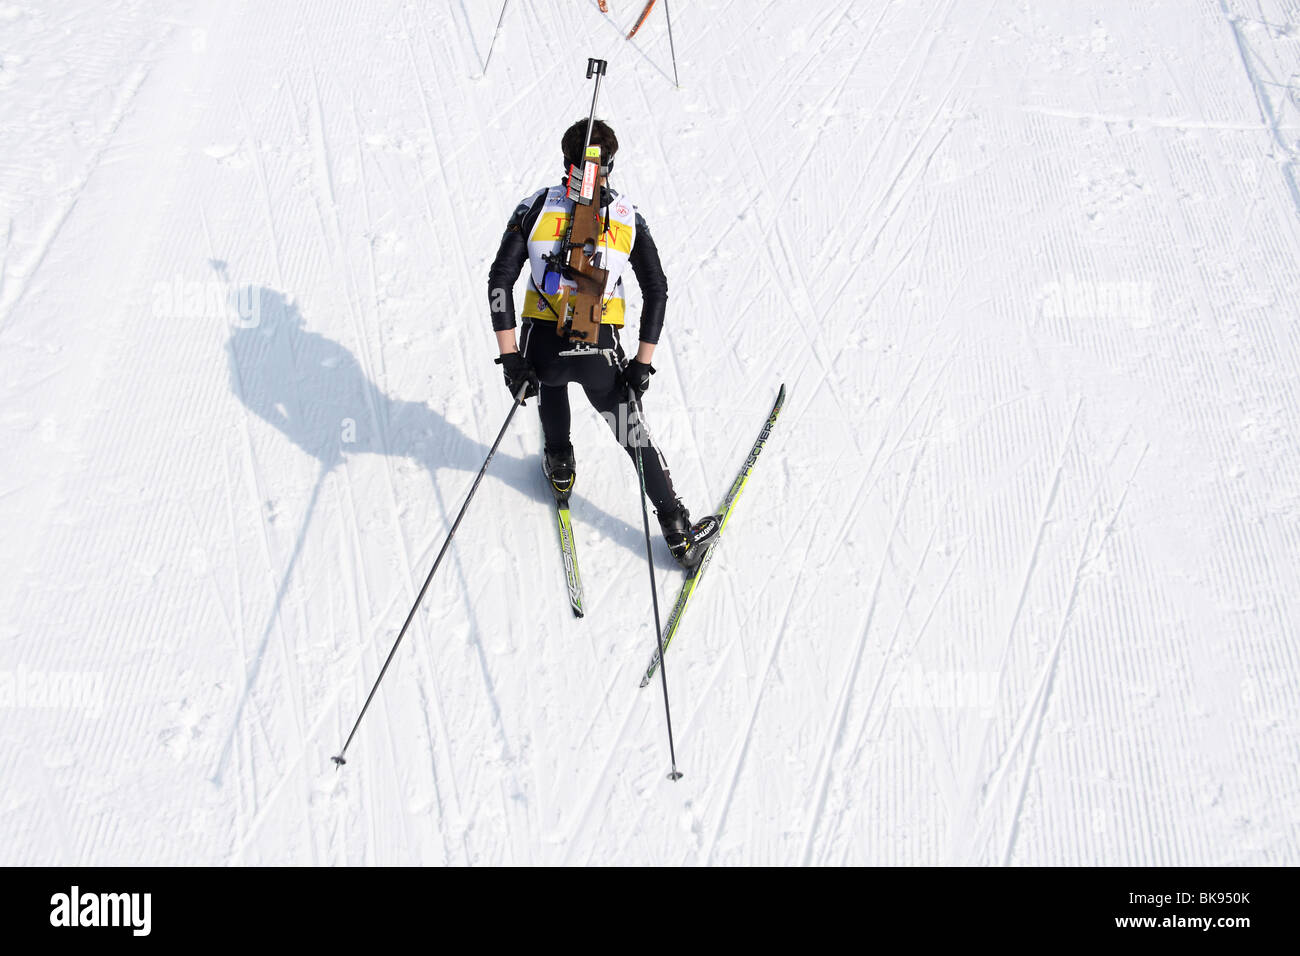 Biathlon competition, Jakuszyce, Poland. - Stock Image